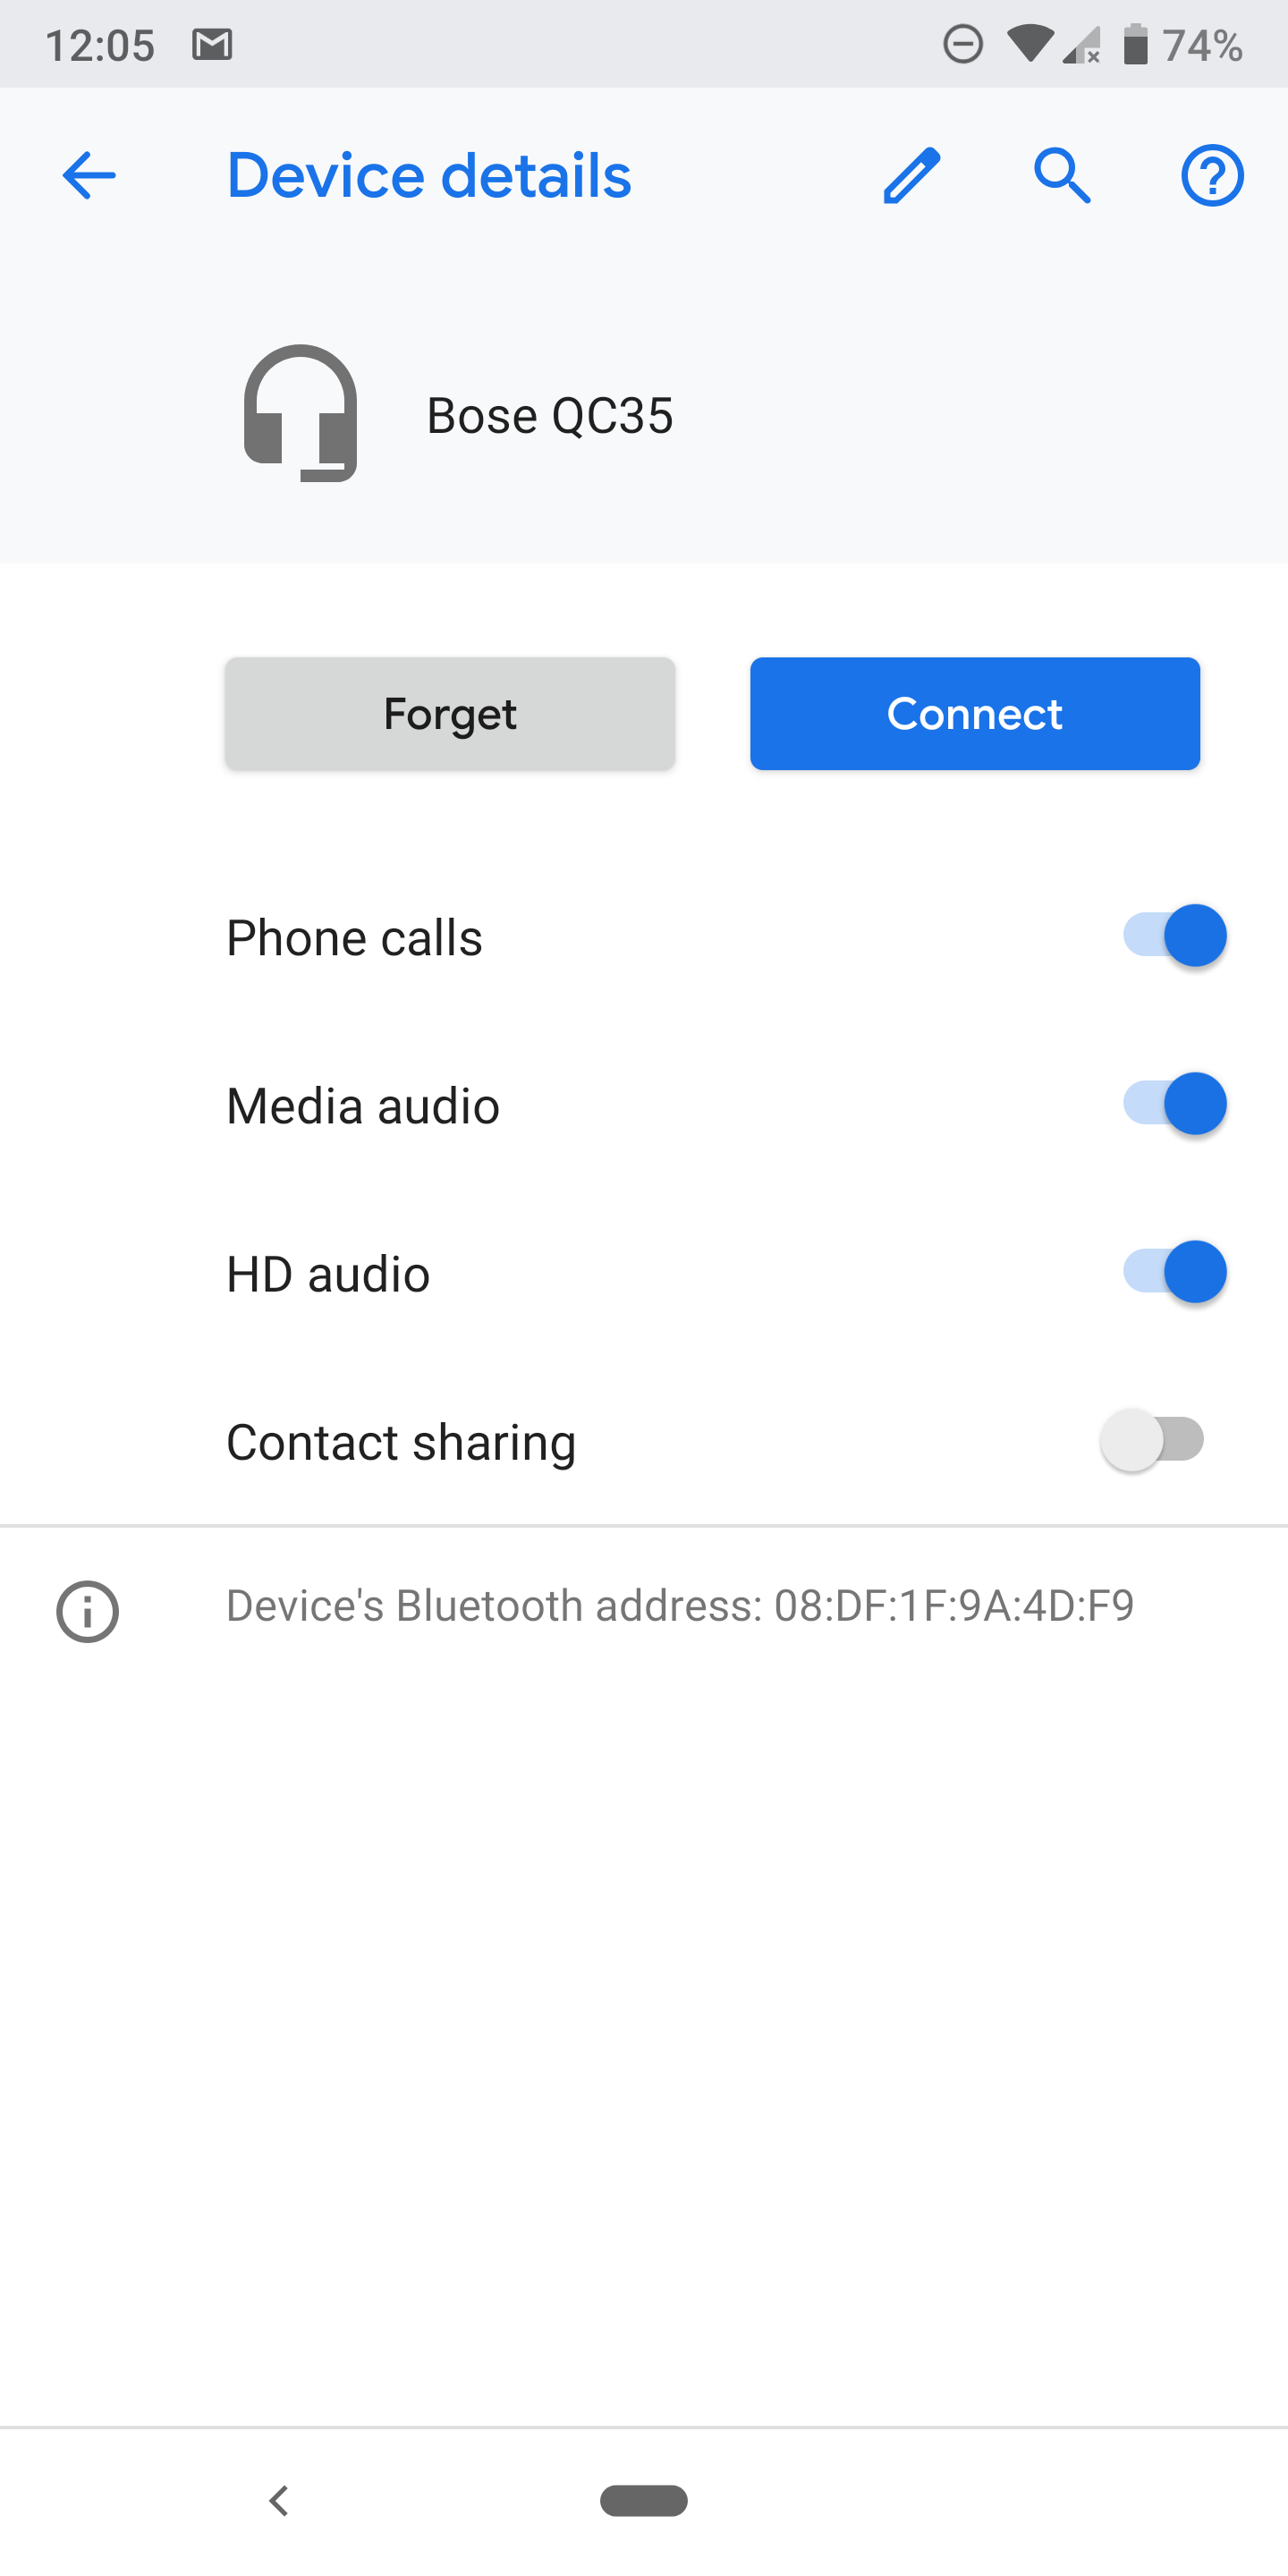 Update x2: More changes] After a week with Android Q Beta 1